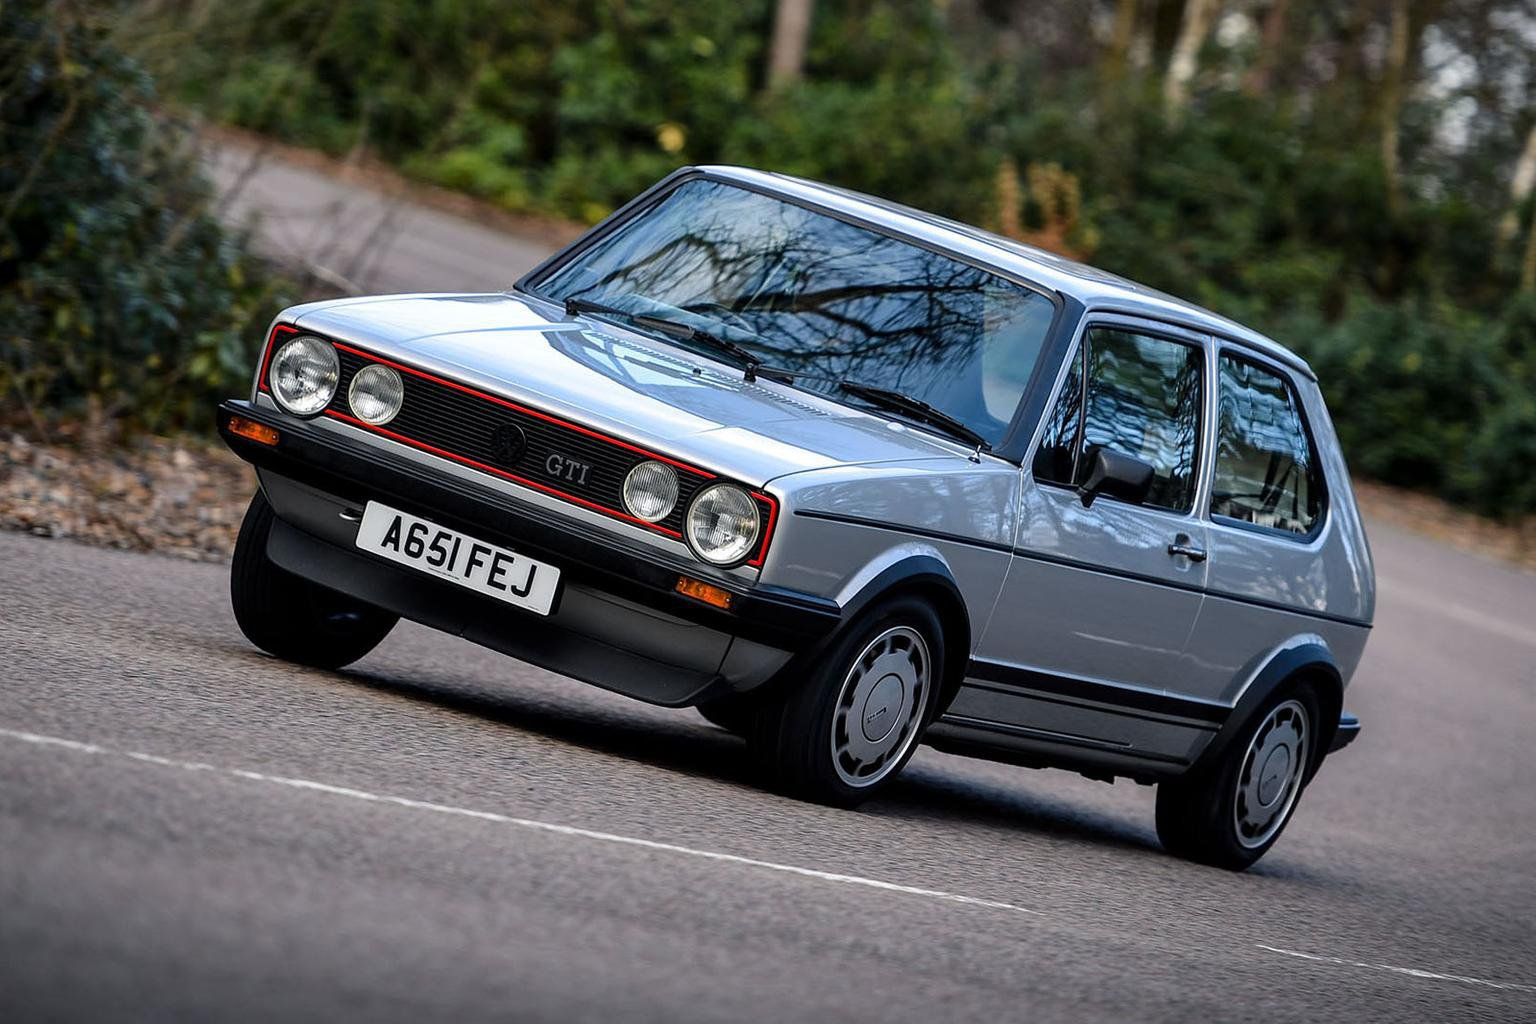 Volkswagen Golf GTI front three quarters